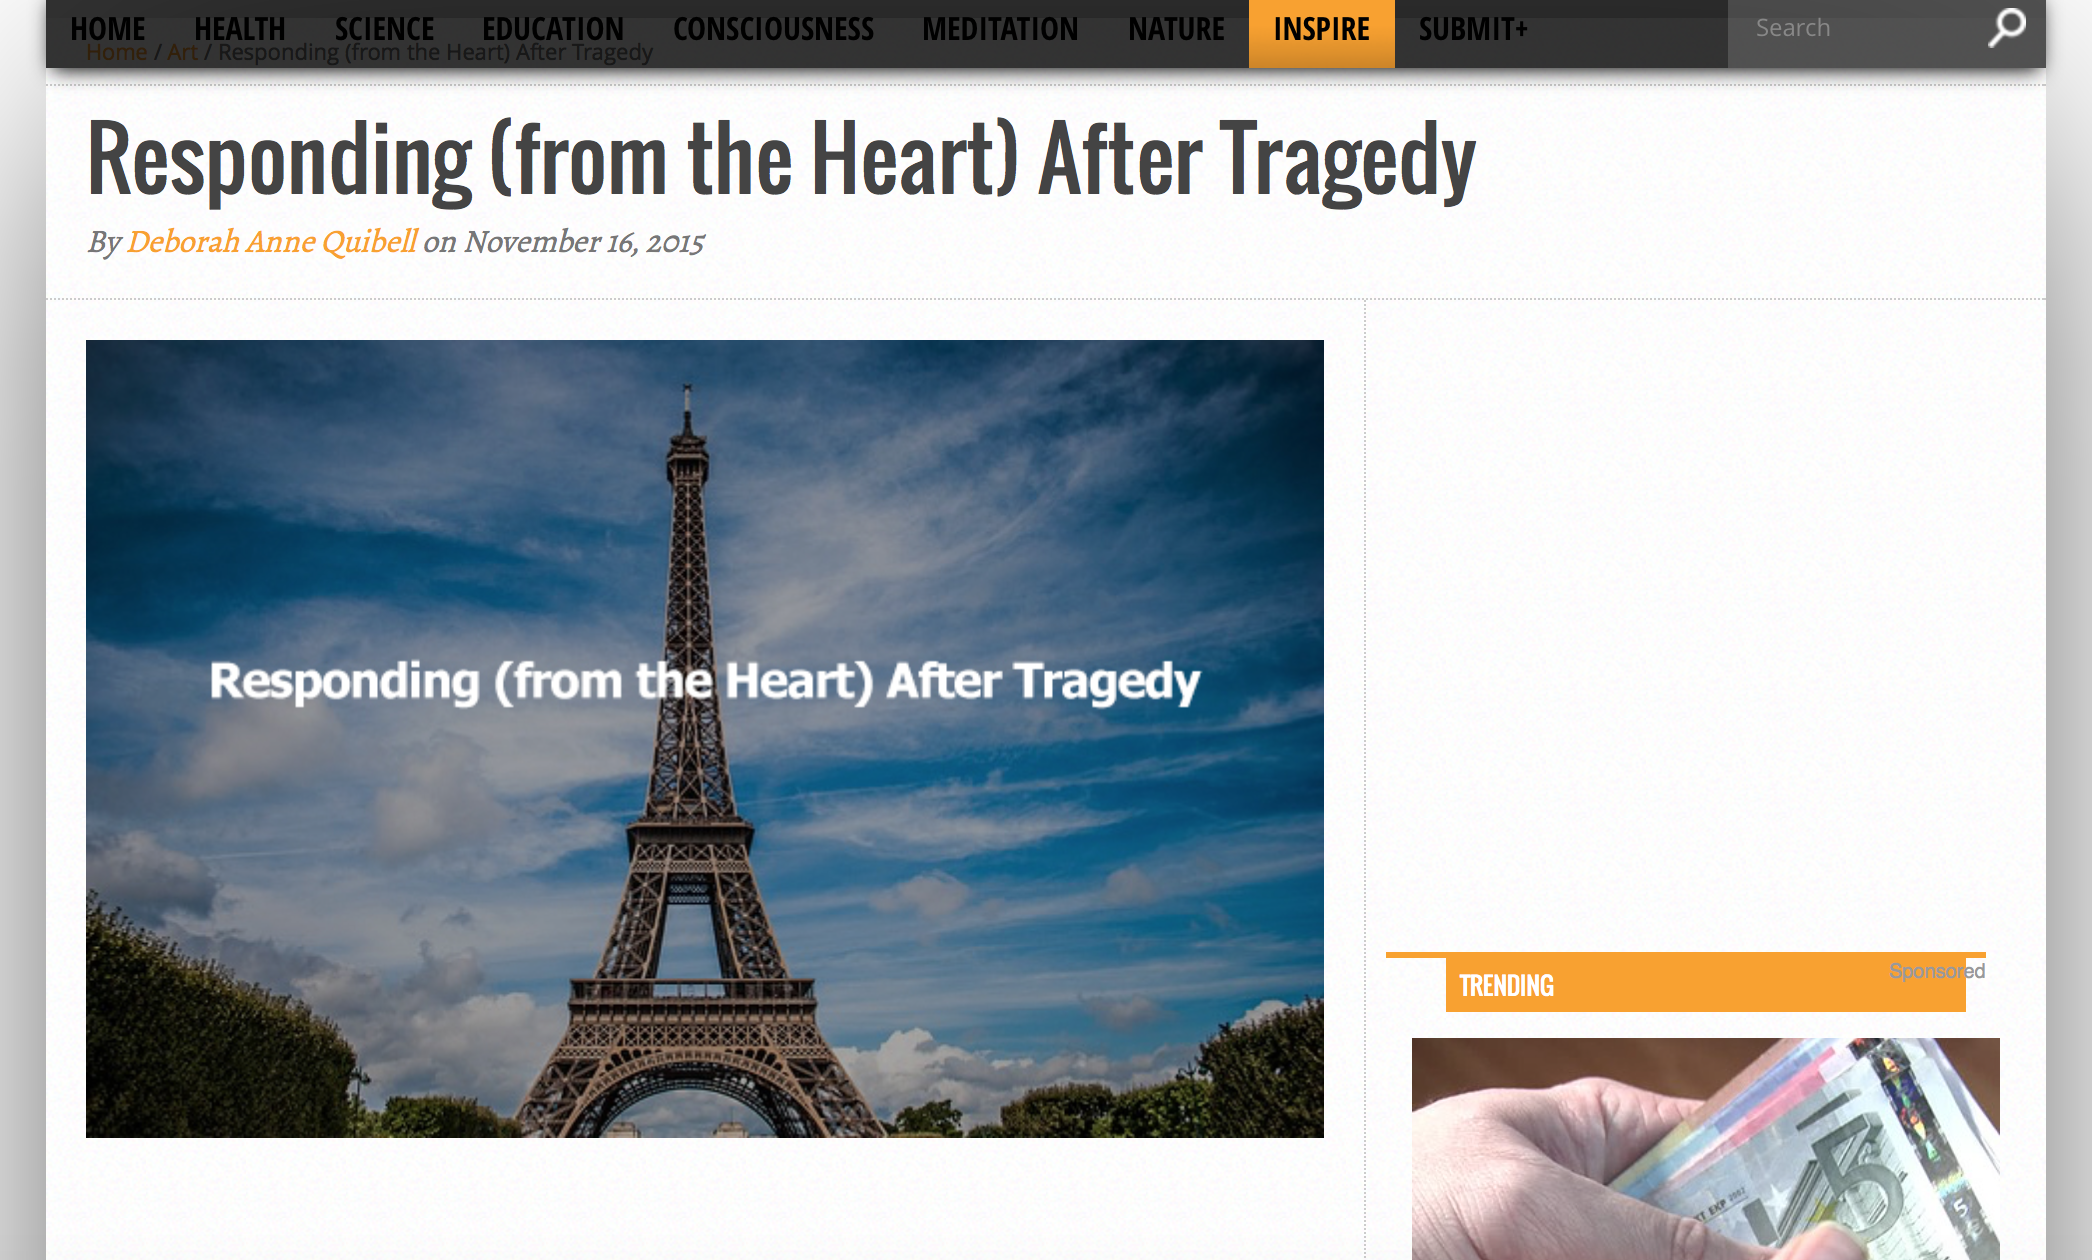 Responding (from the heart) After Tragedy